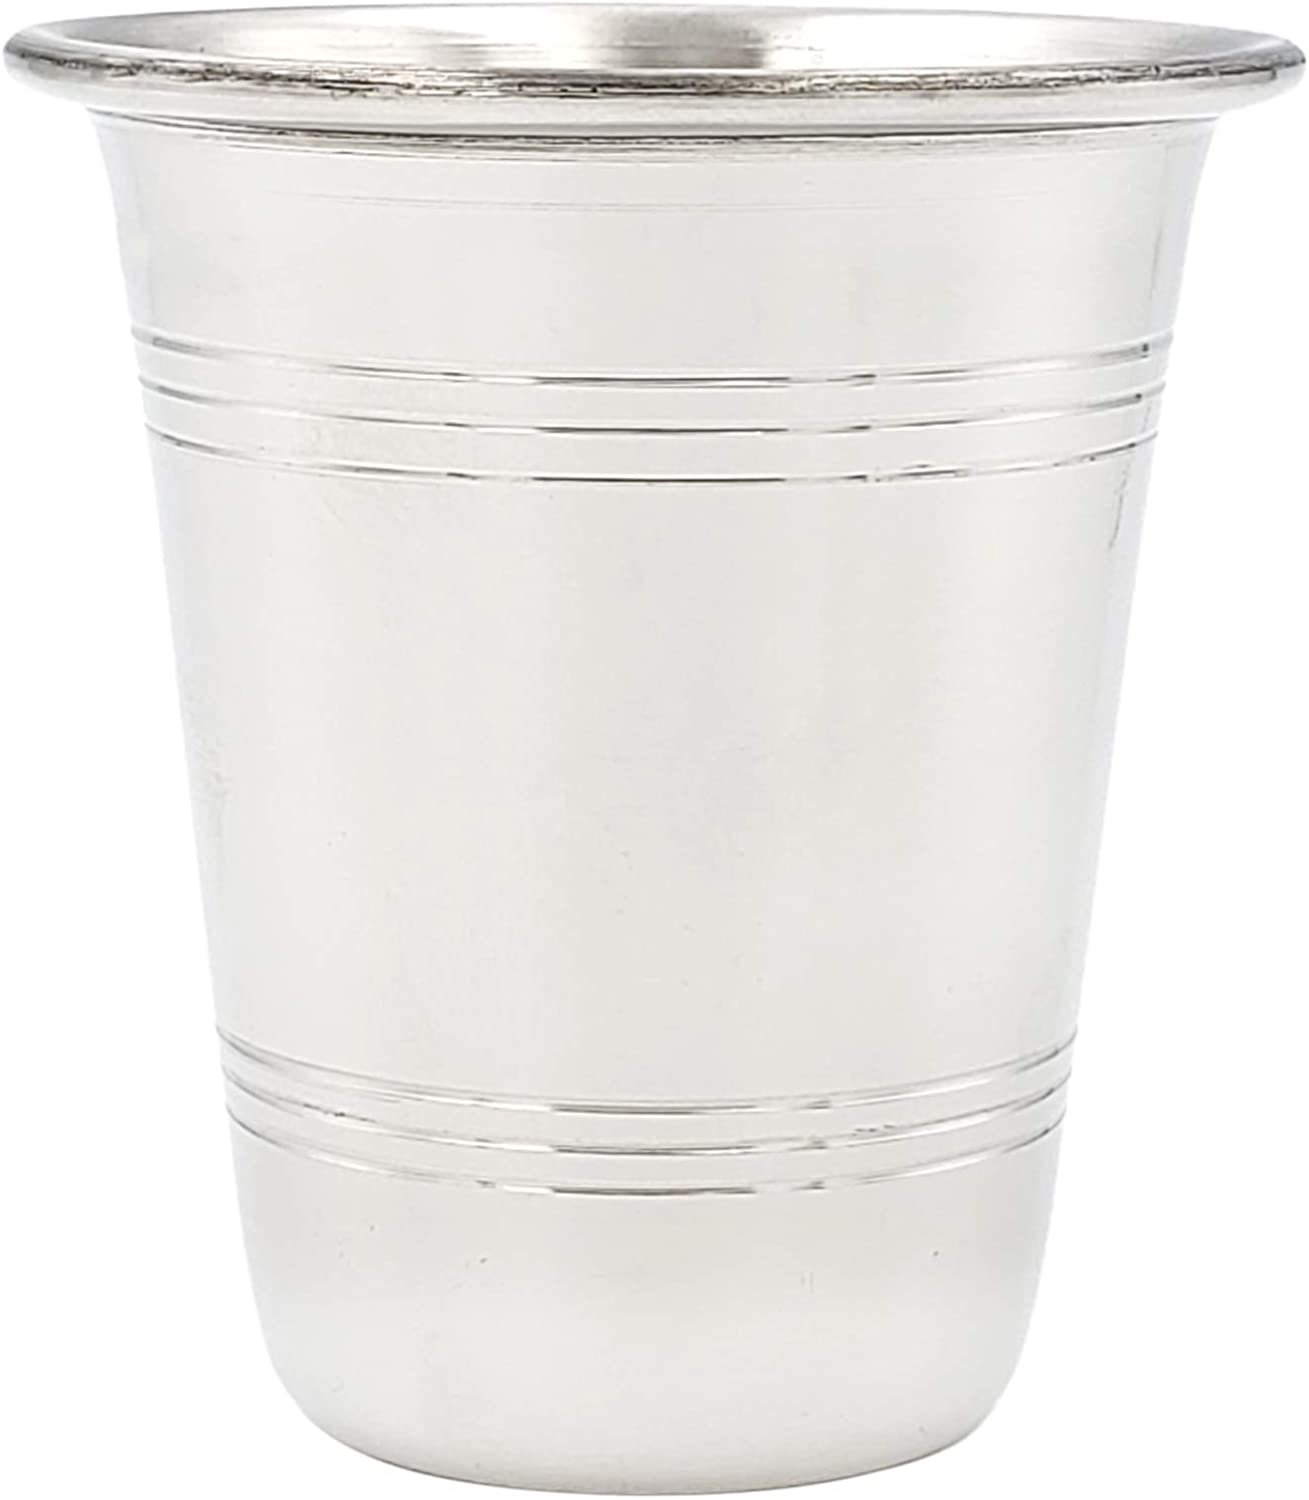 Kiddush Cup Stainless Steel, For Shabbos, Holidays, and Havdalah - Non Tarnish Judaica (Single)